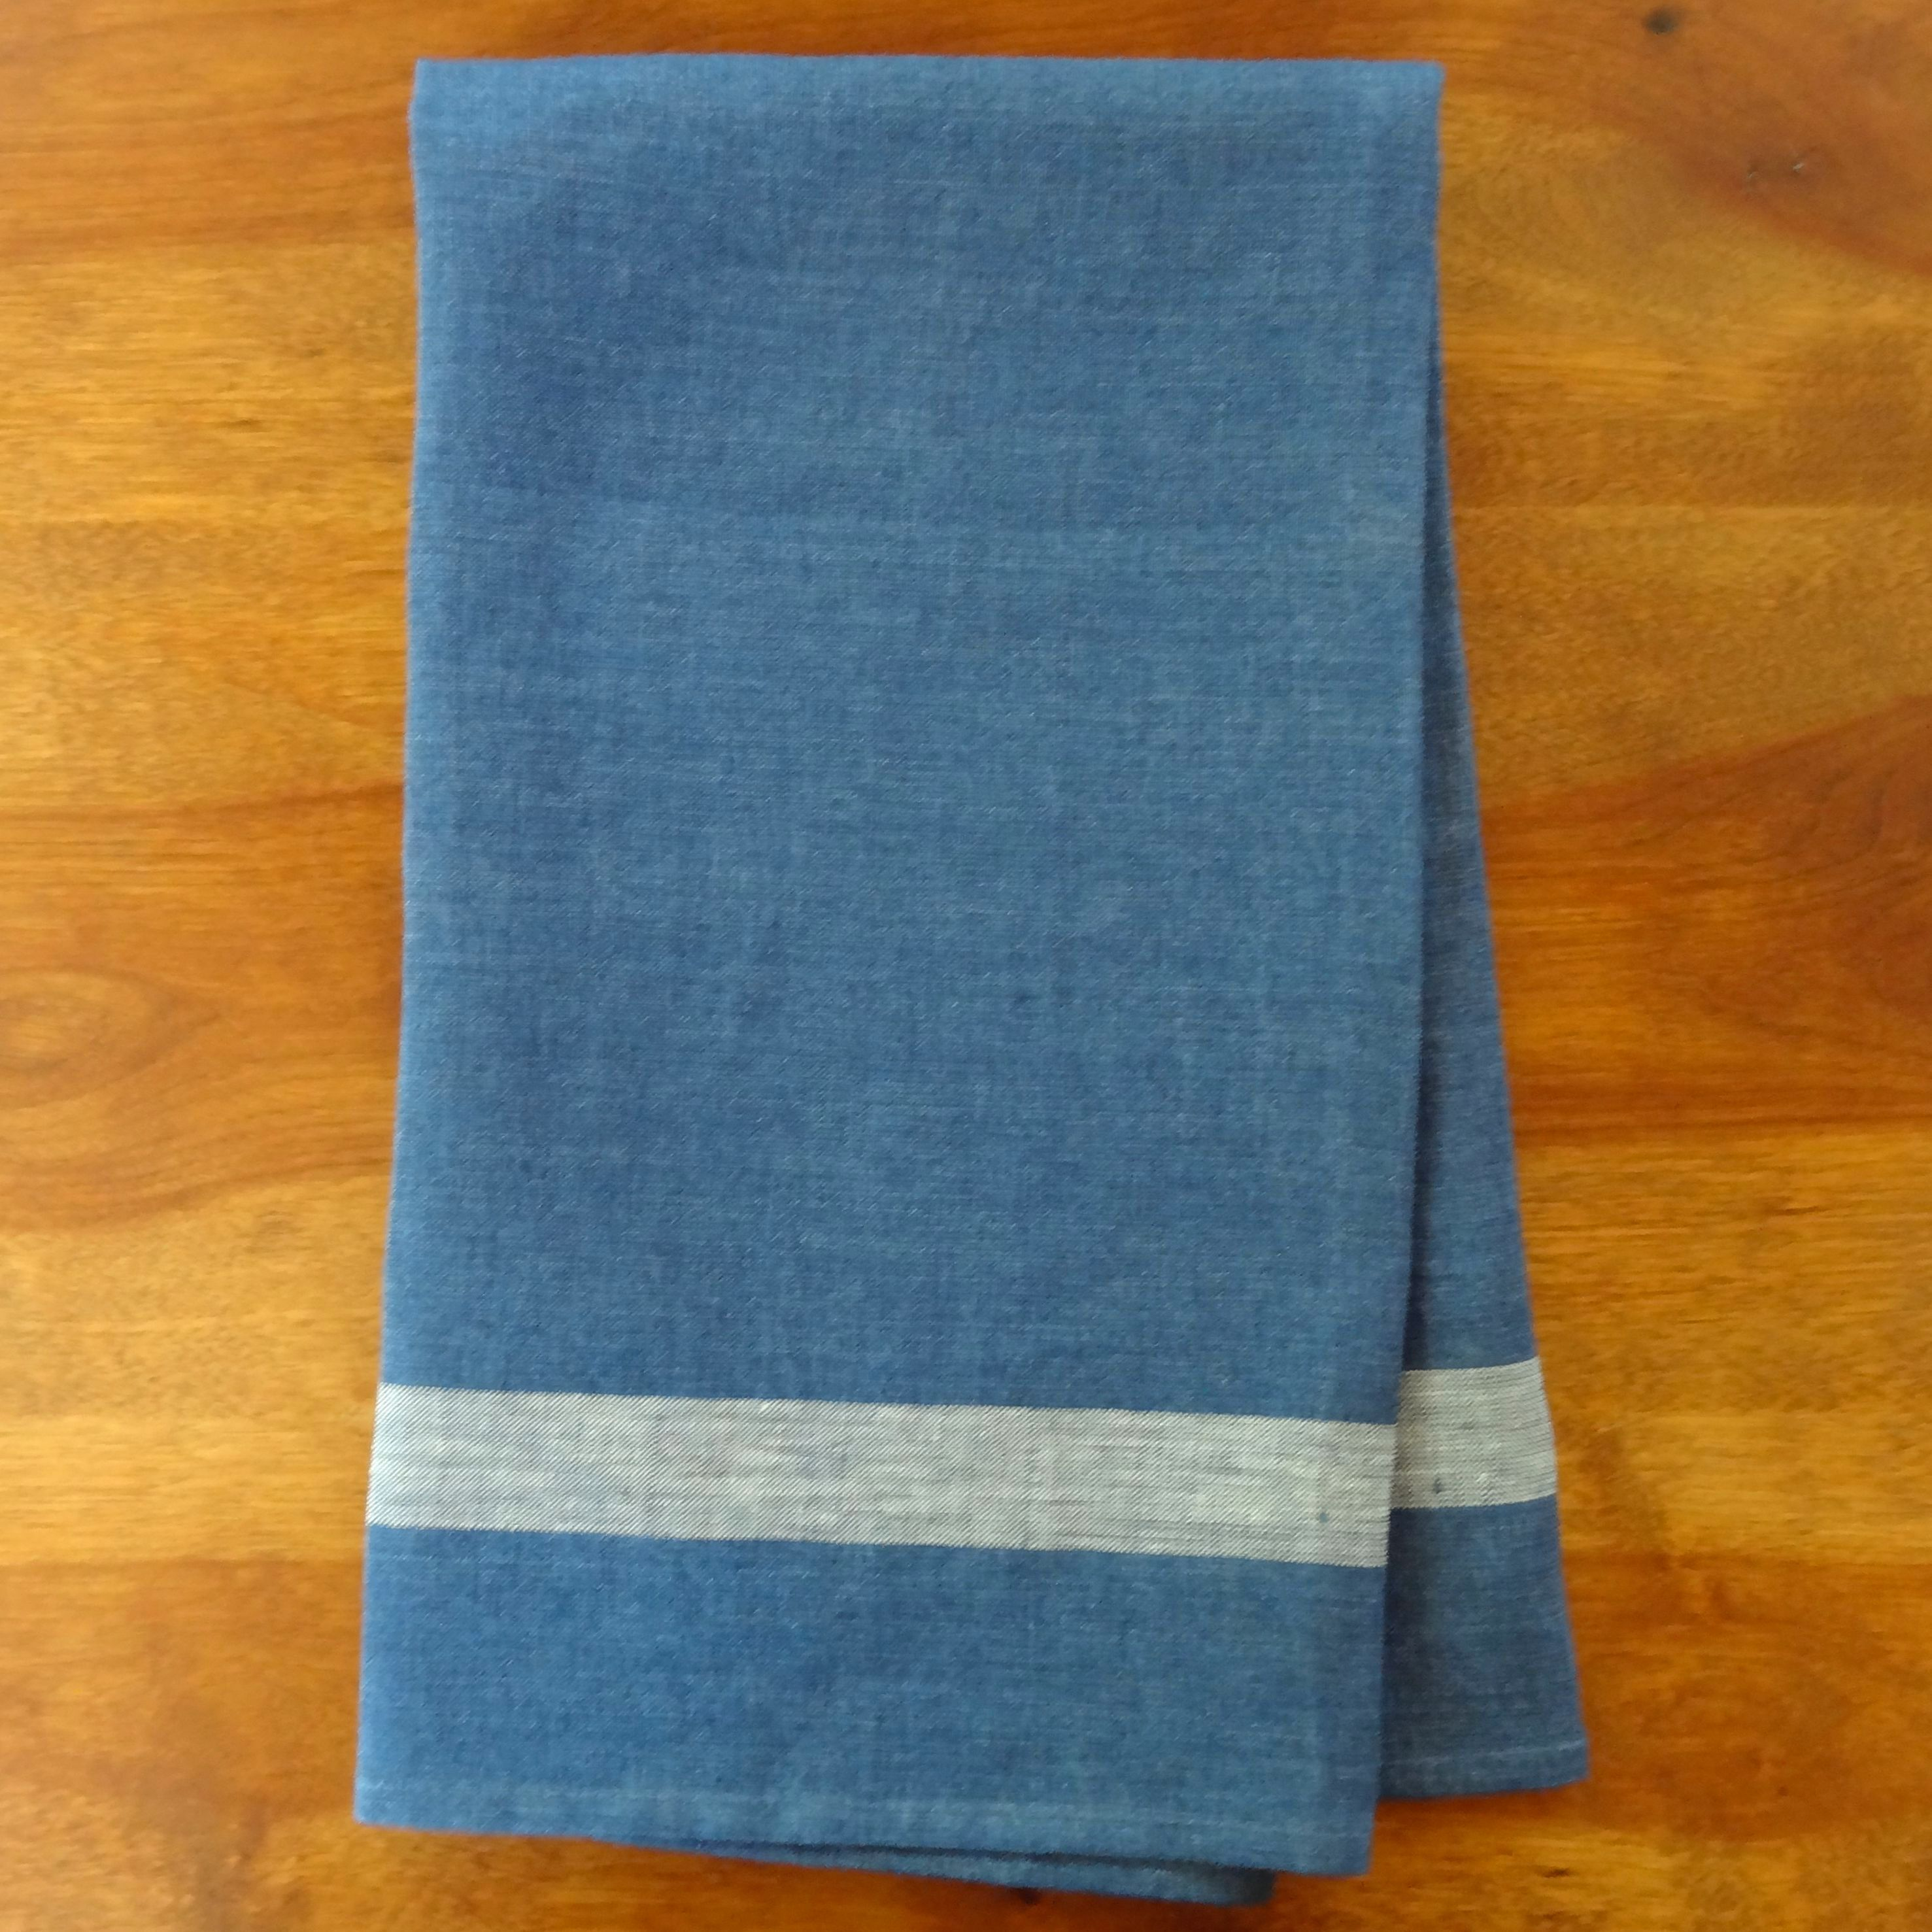 Blue Linen Tea Towel by Libeco